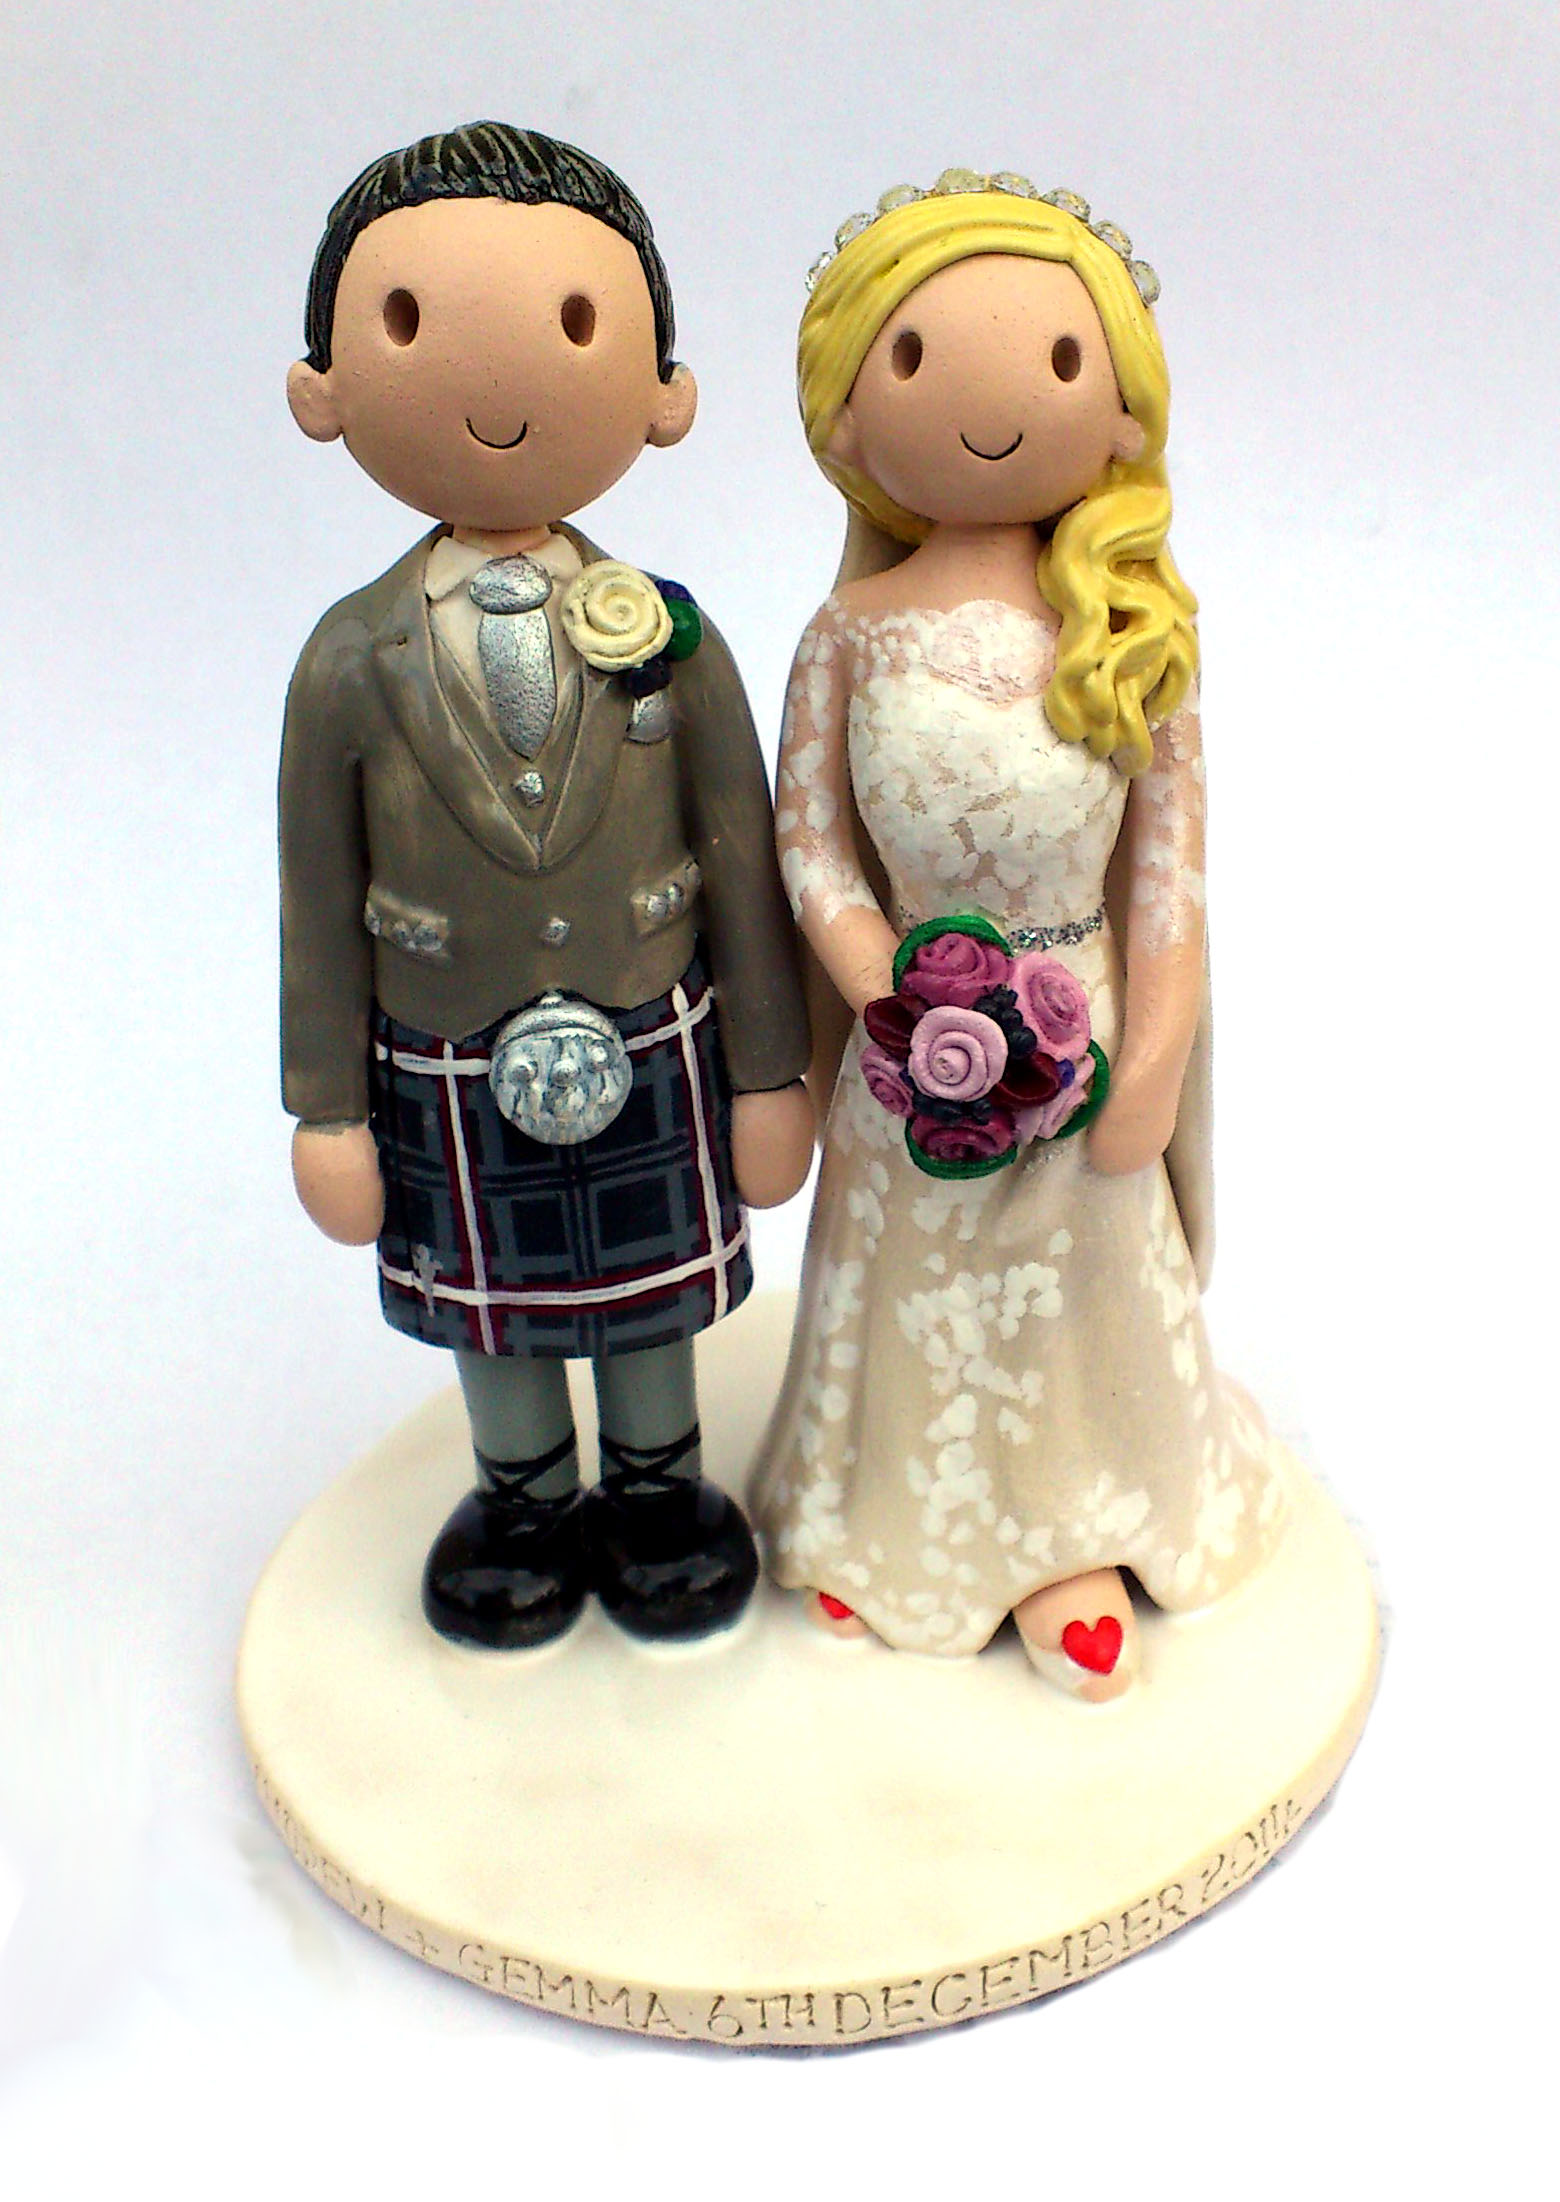 personalised wedding cake toppers uk only wedding cake toppers 18257